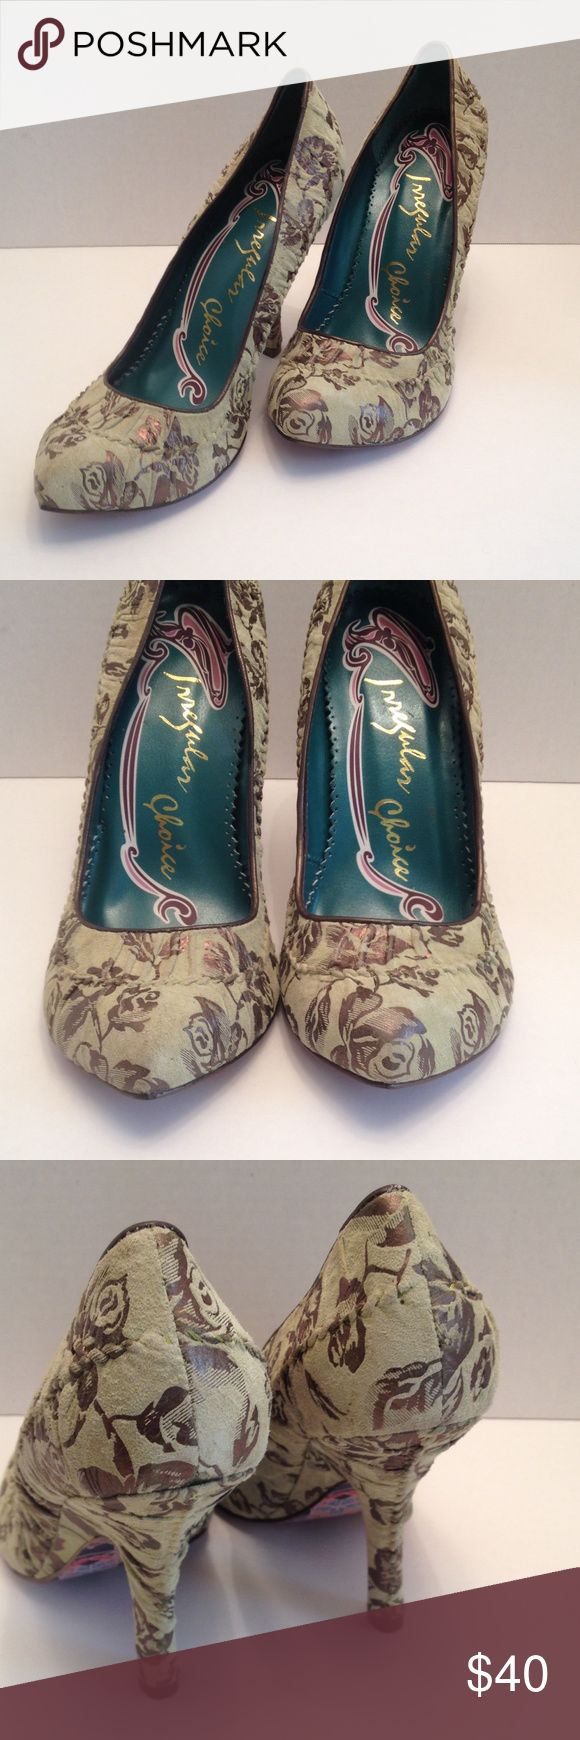 "Irregular choice green suede heels Pretty green & bronze suede pumps with floral print in good condition. New without box with 4"" heels. Size 41/10m irregular choice Shoes Heels"